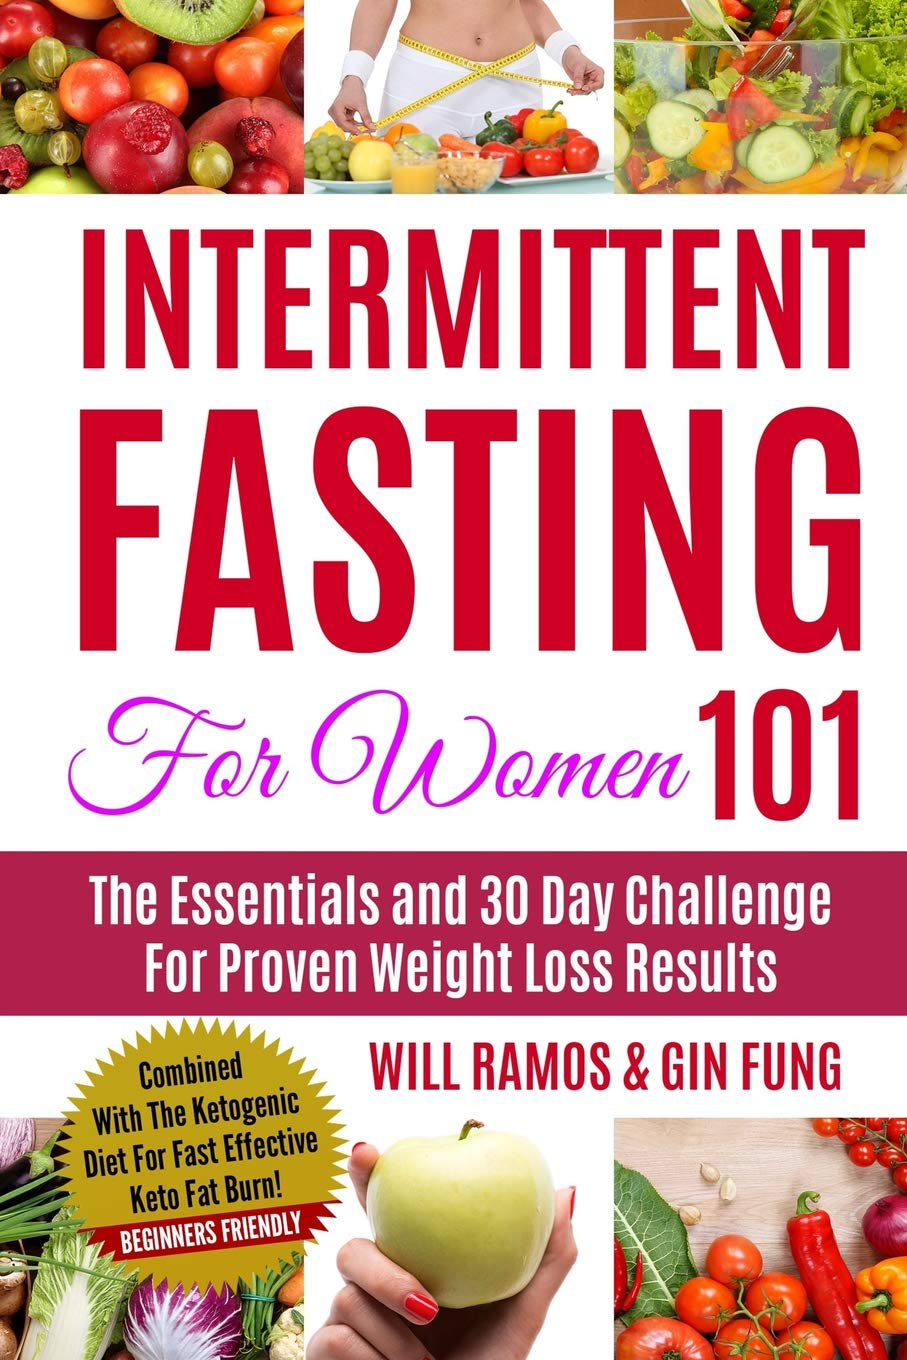 Intermittent Fasting For Women 101 The Essentials And 30 Day Challenge For Proven Weight Loss Results Combined With The Ketogenic Diet For Fast Effective Keto Fat Burn Beginners Friendly Ramos Will Fung